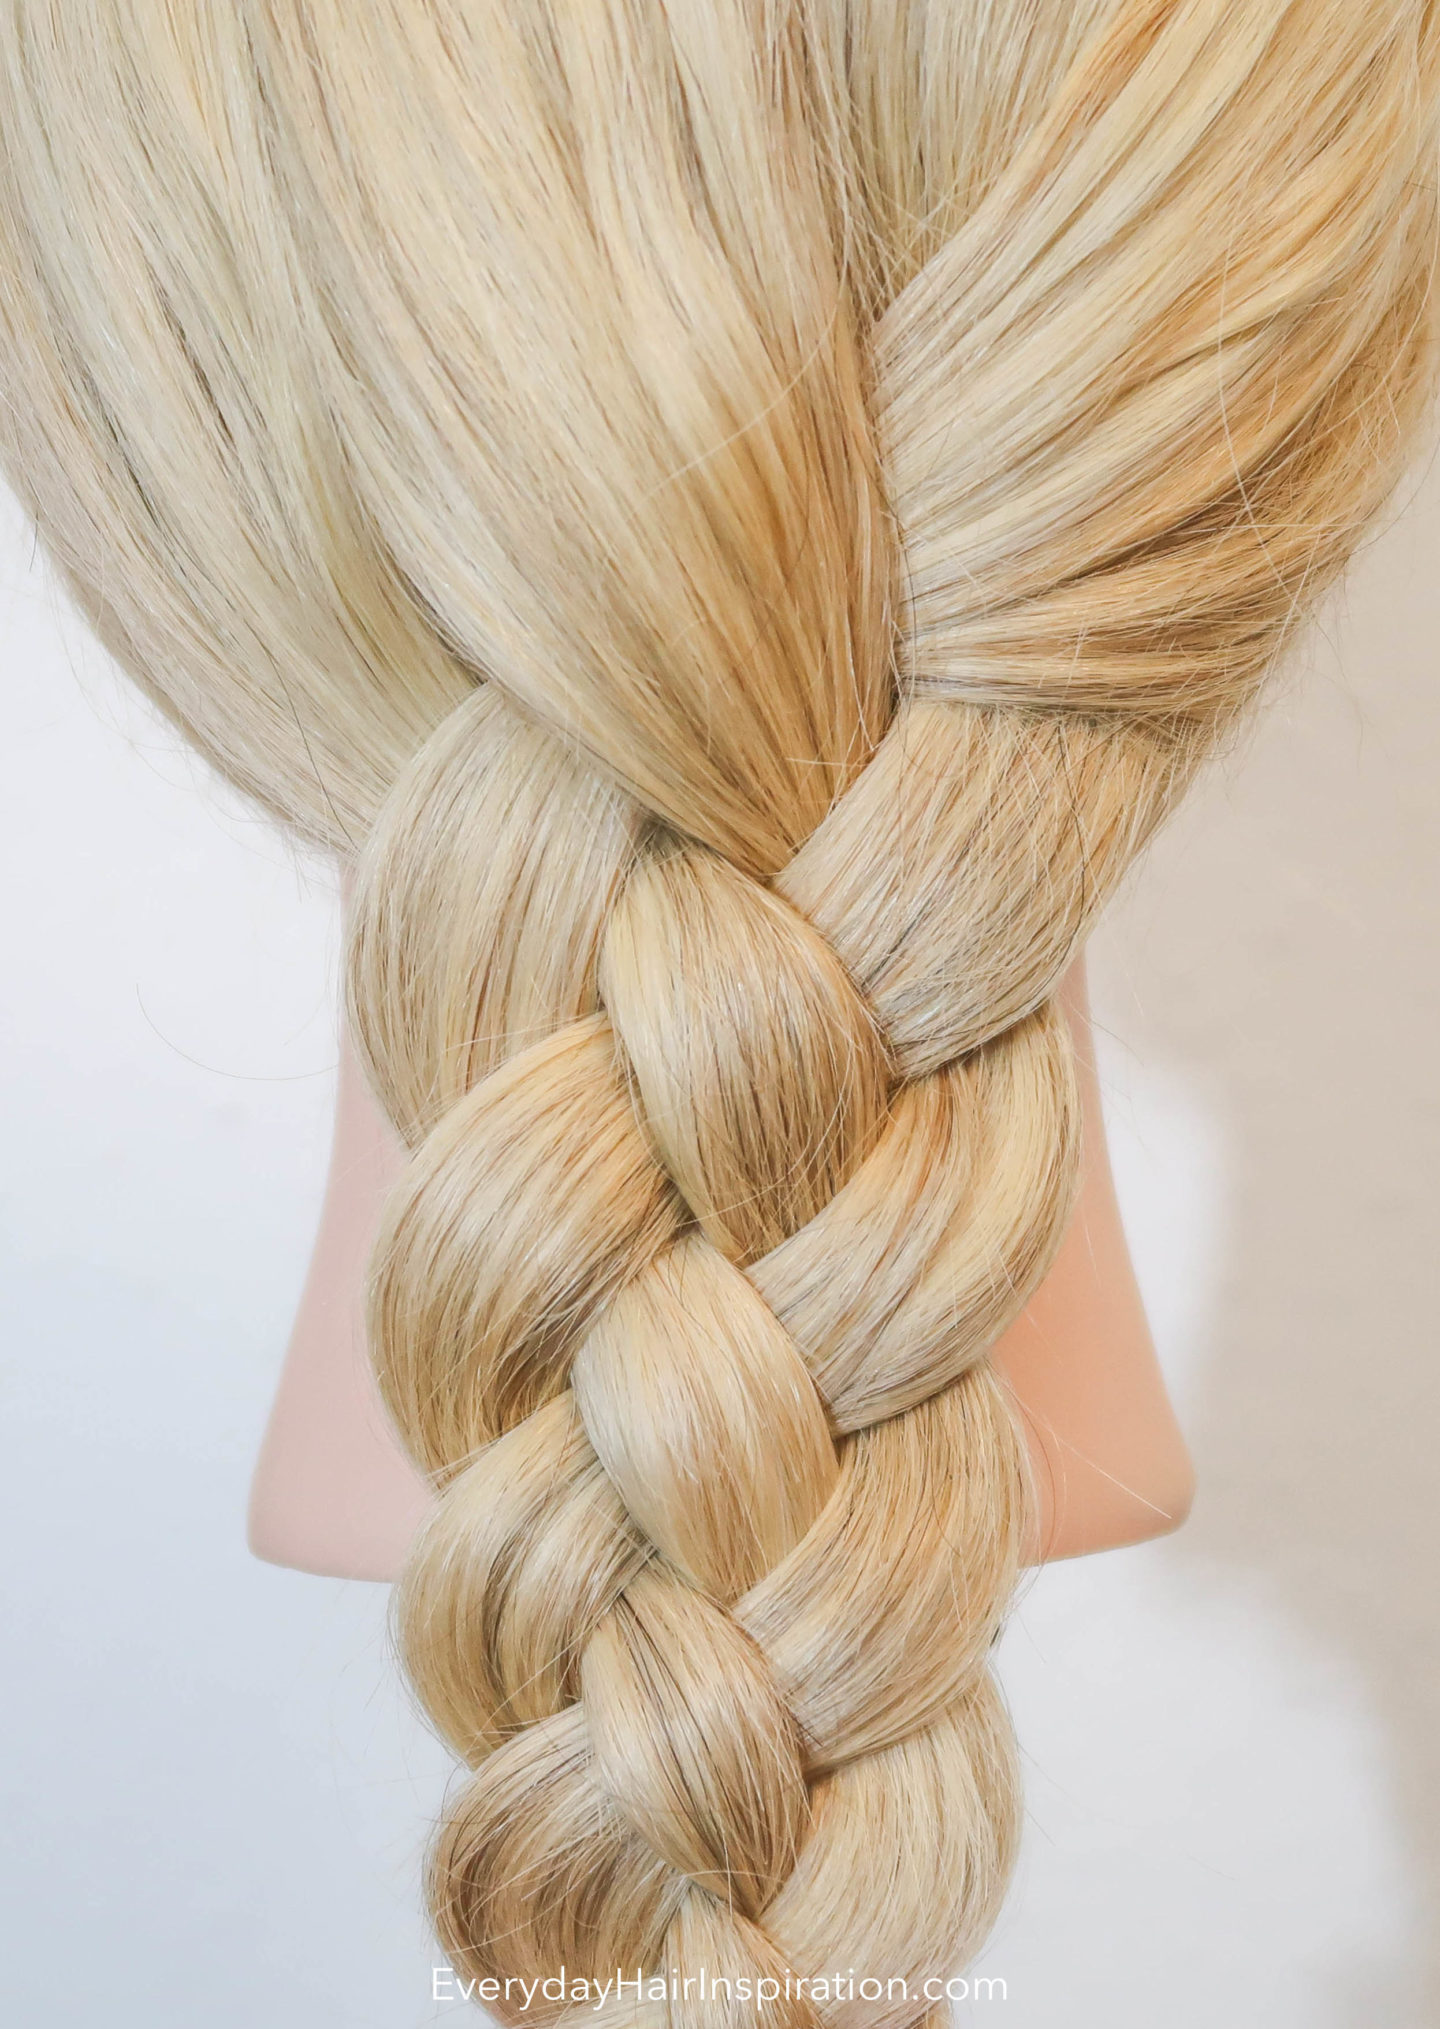 Picture of a hairdresser doll, with a 4 strand flat braid, braided in the hair.